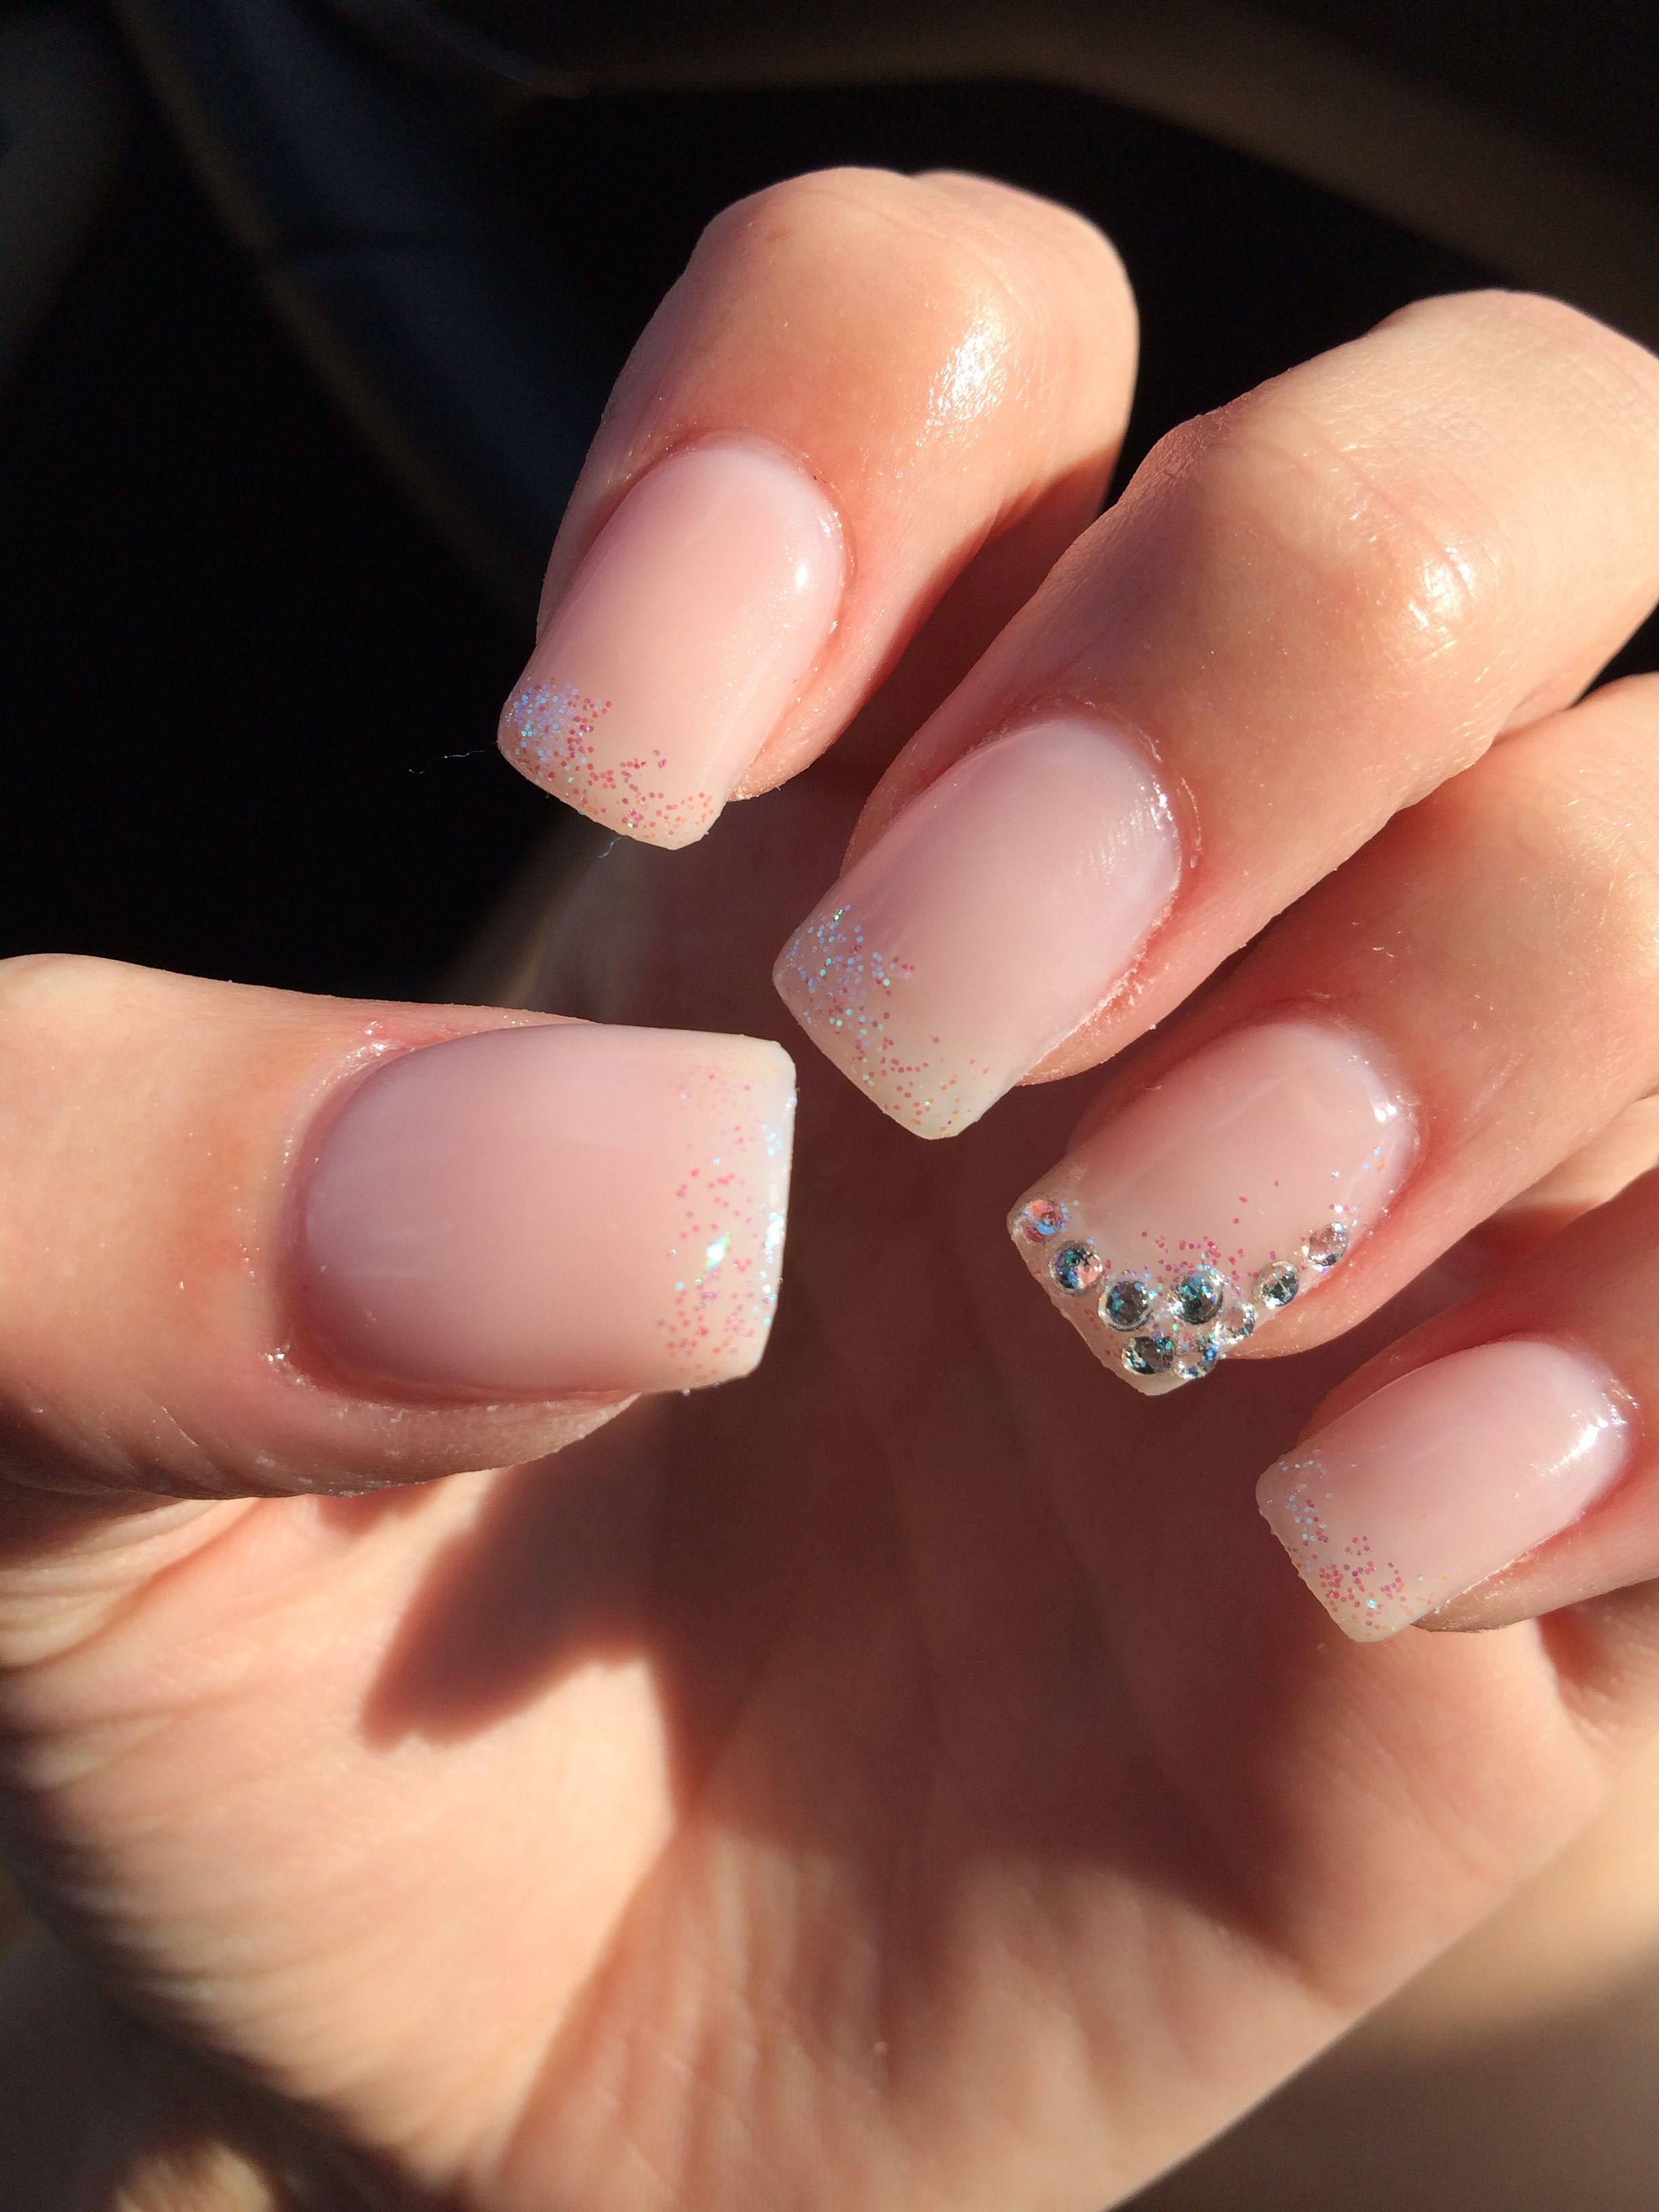 Prom nails | Nails | Pinterest | Prom nails, Prom and Make up